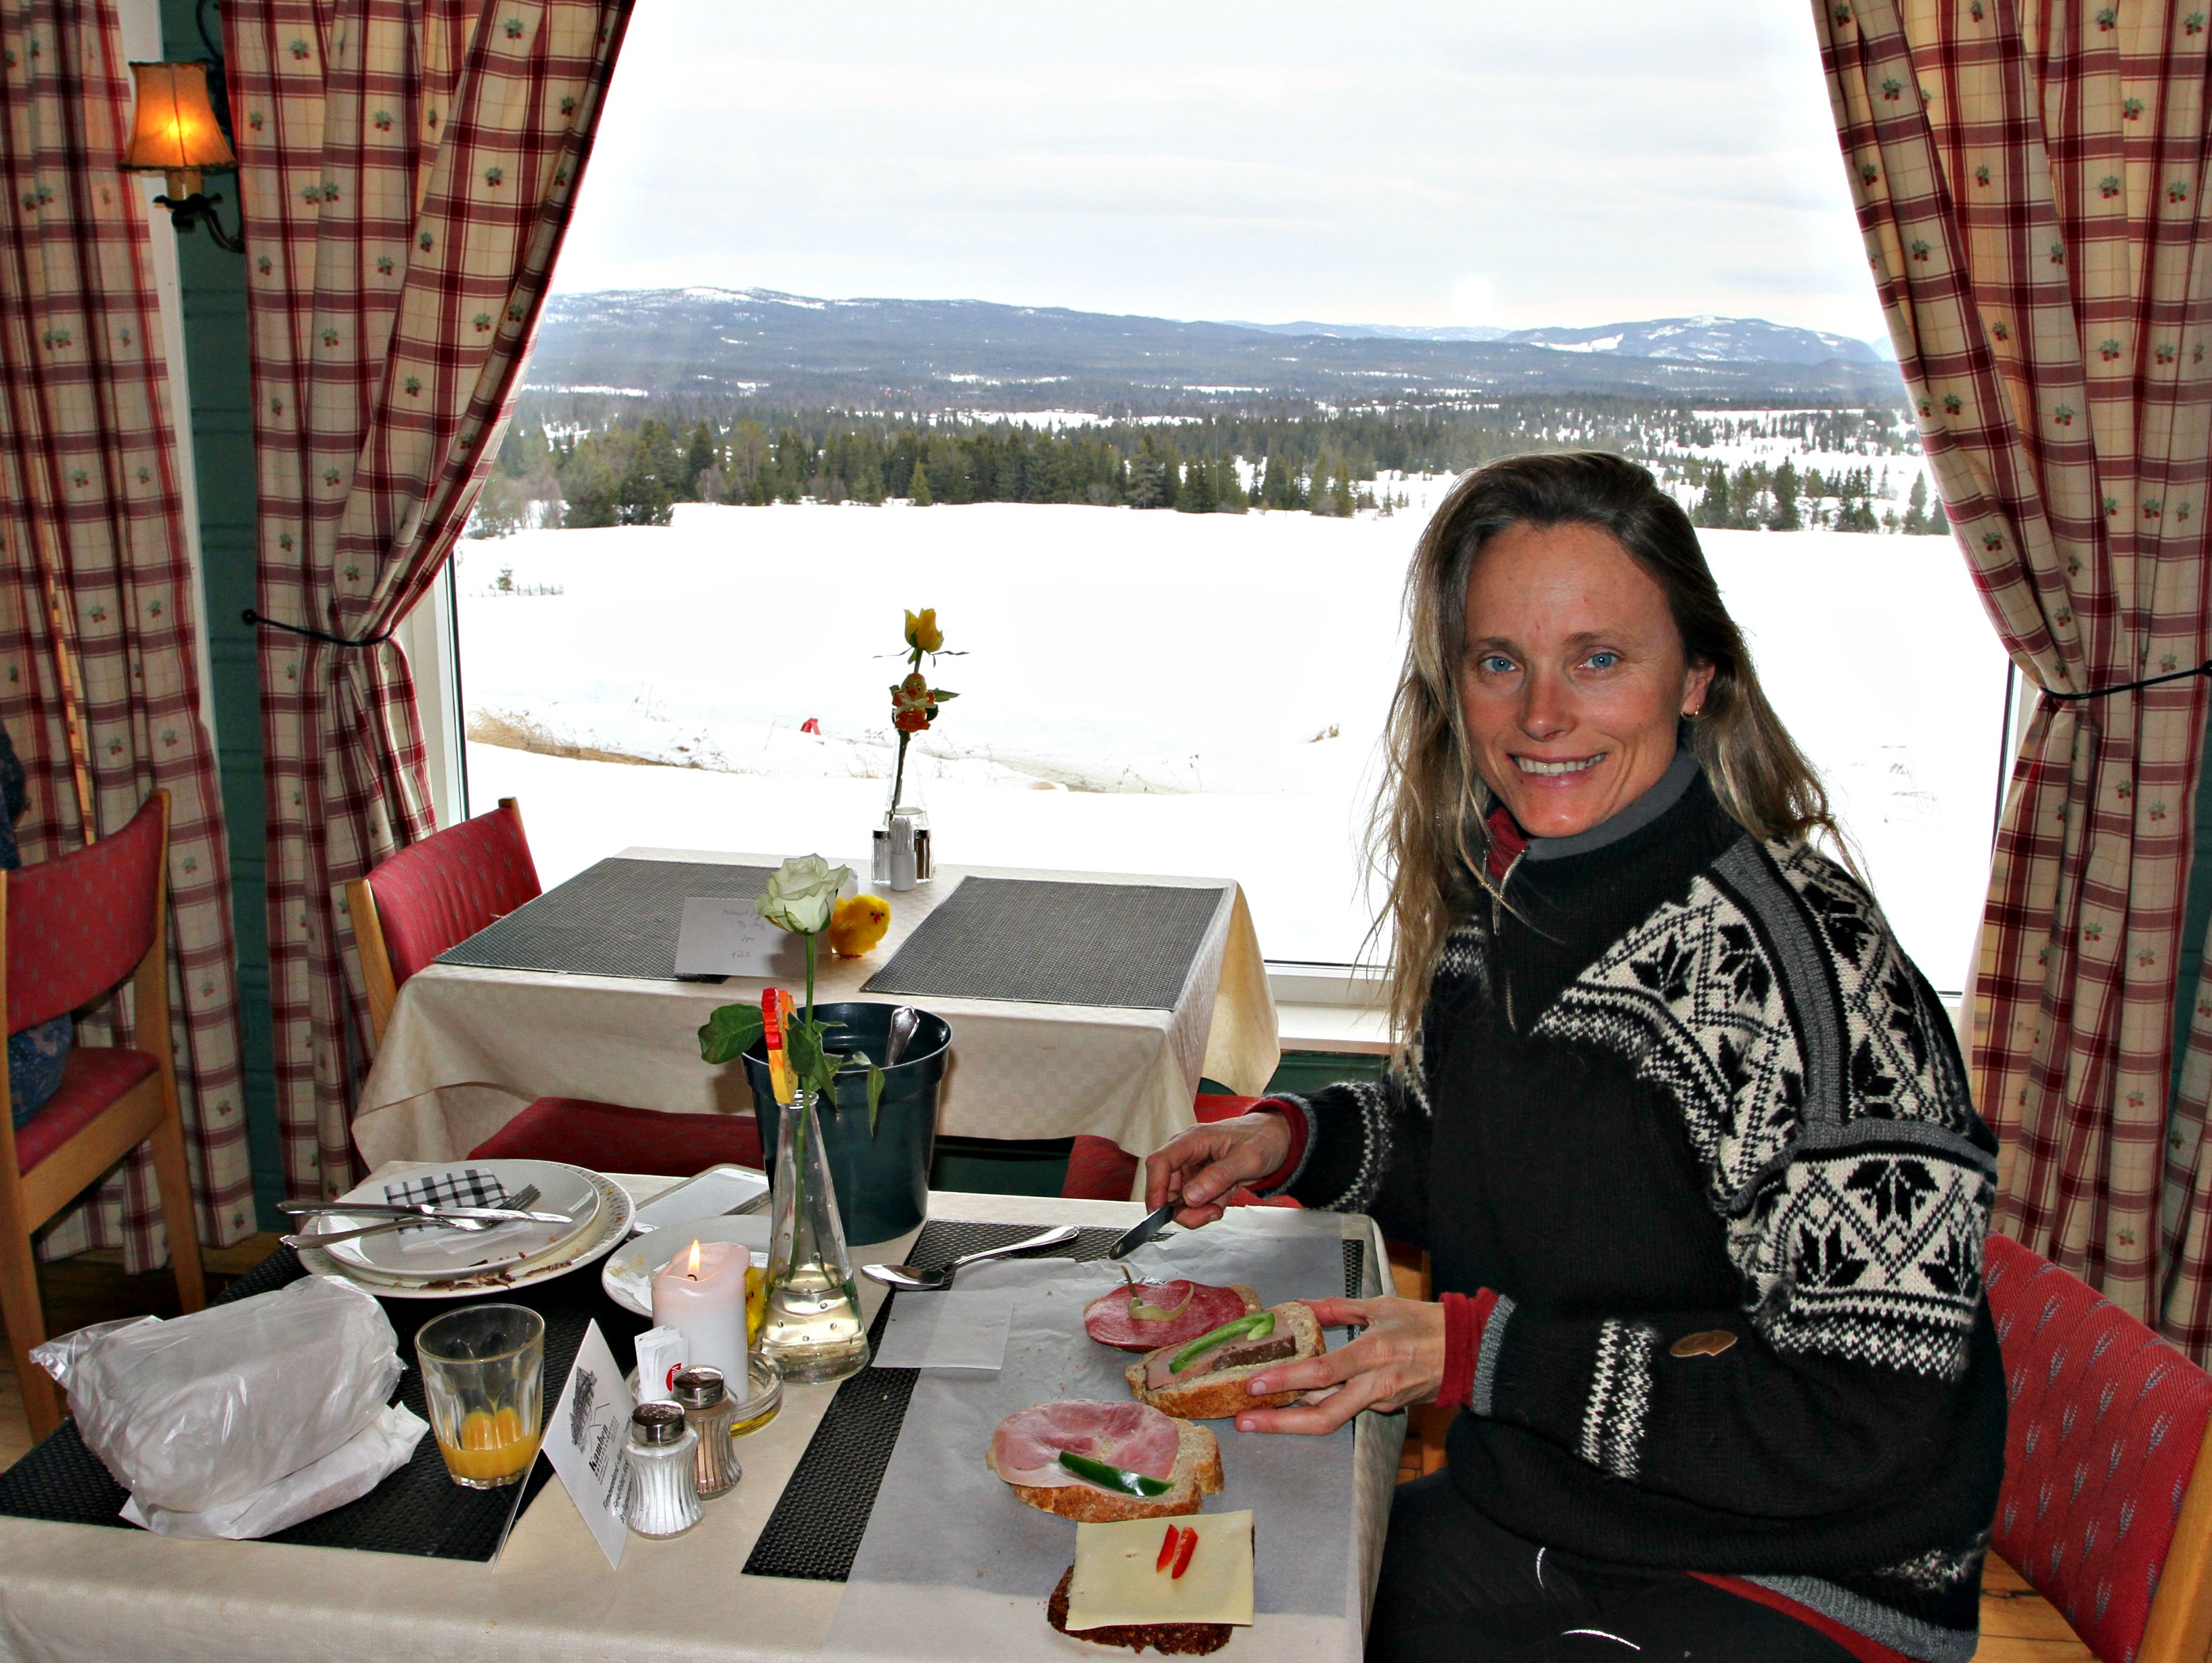 NORWEGAIN WAY Packed lunch instead of buffet. Enjoy your meal in the nature, not inside the hotel.